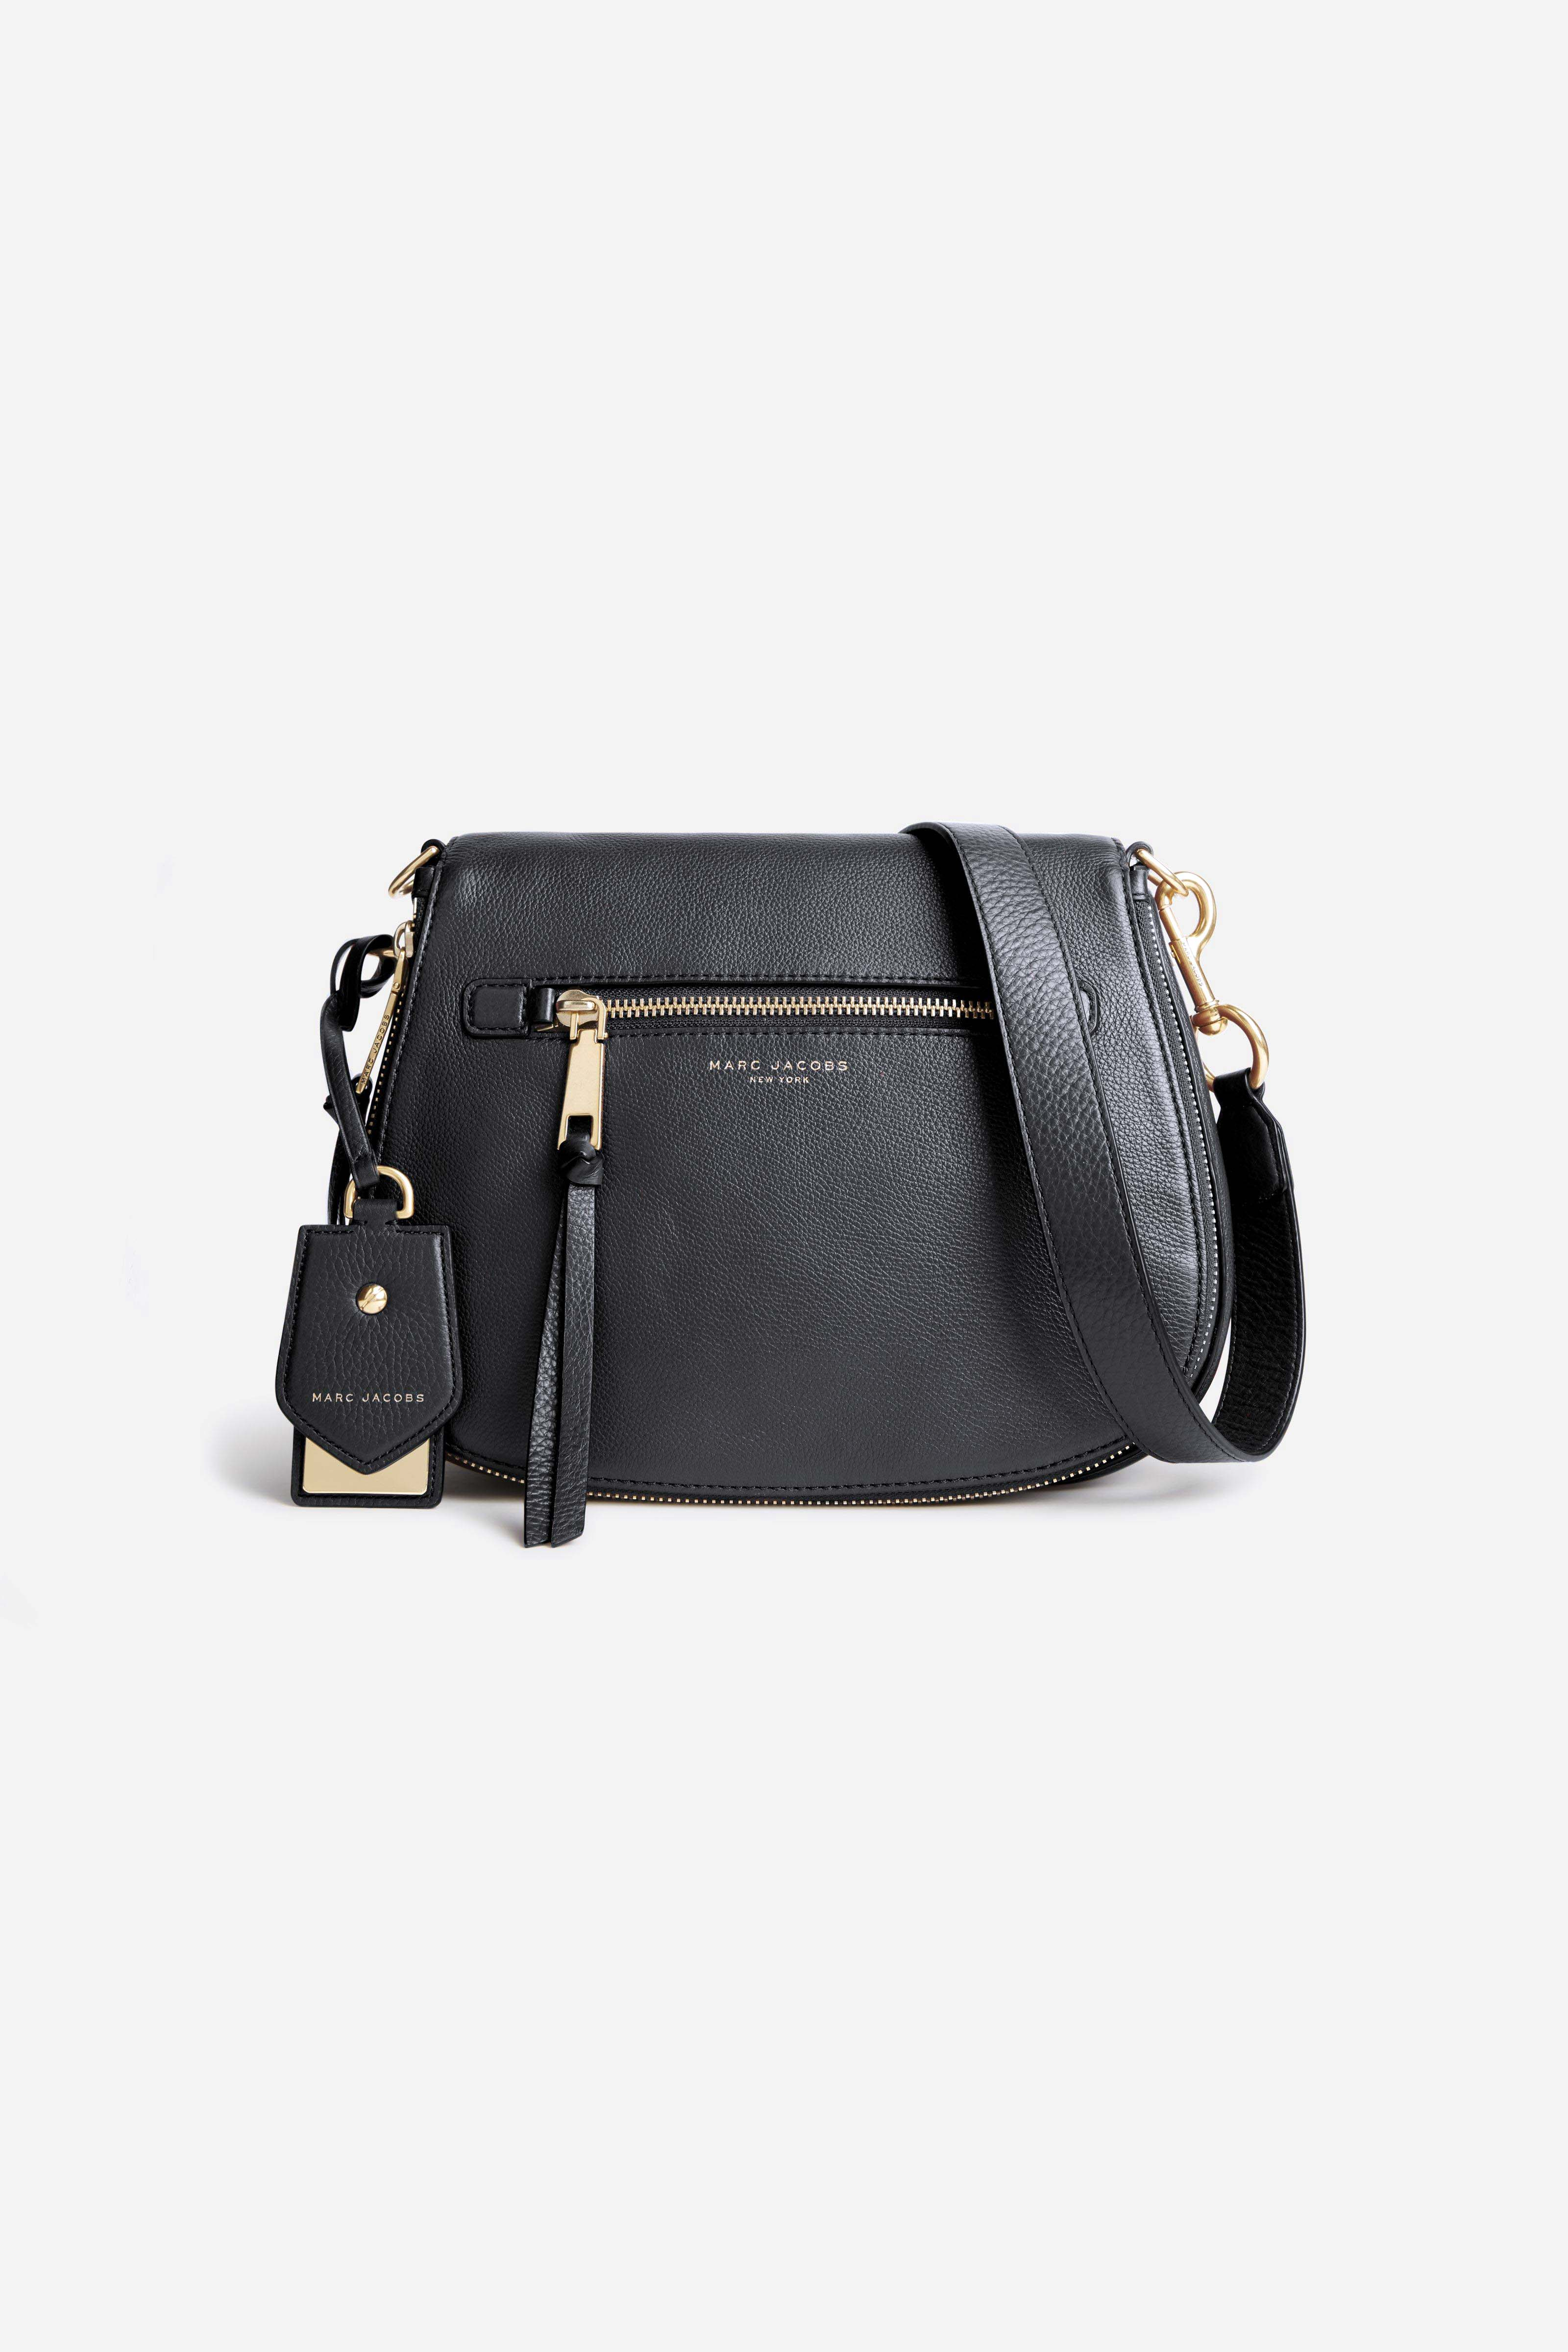 Marc Jacobs 9 - Recruit Small Nomad Bag - Black